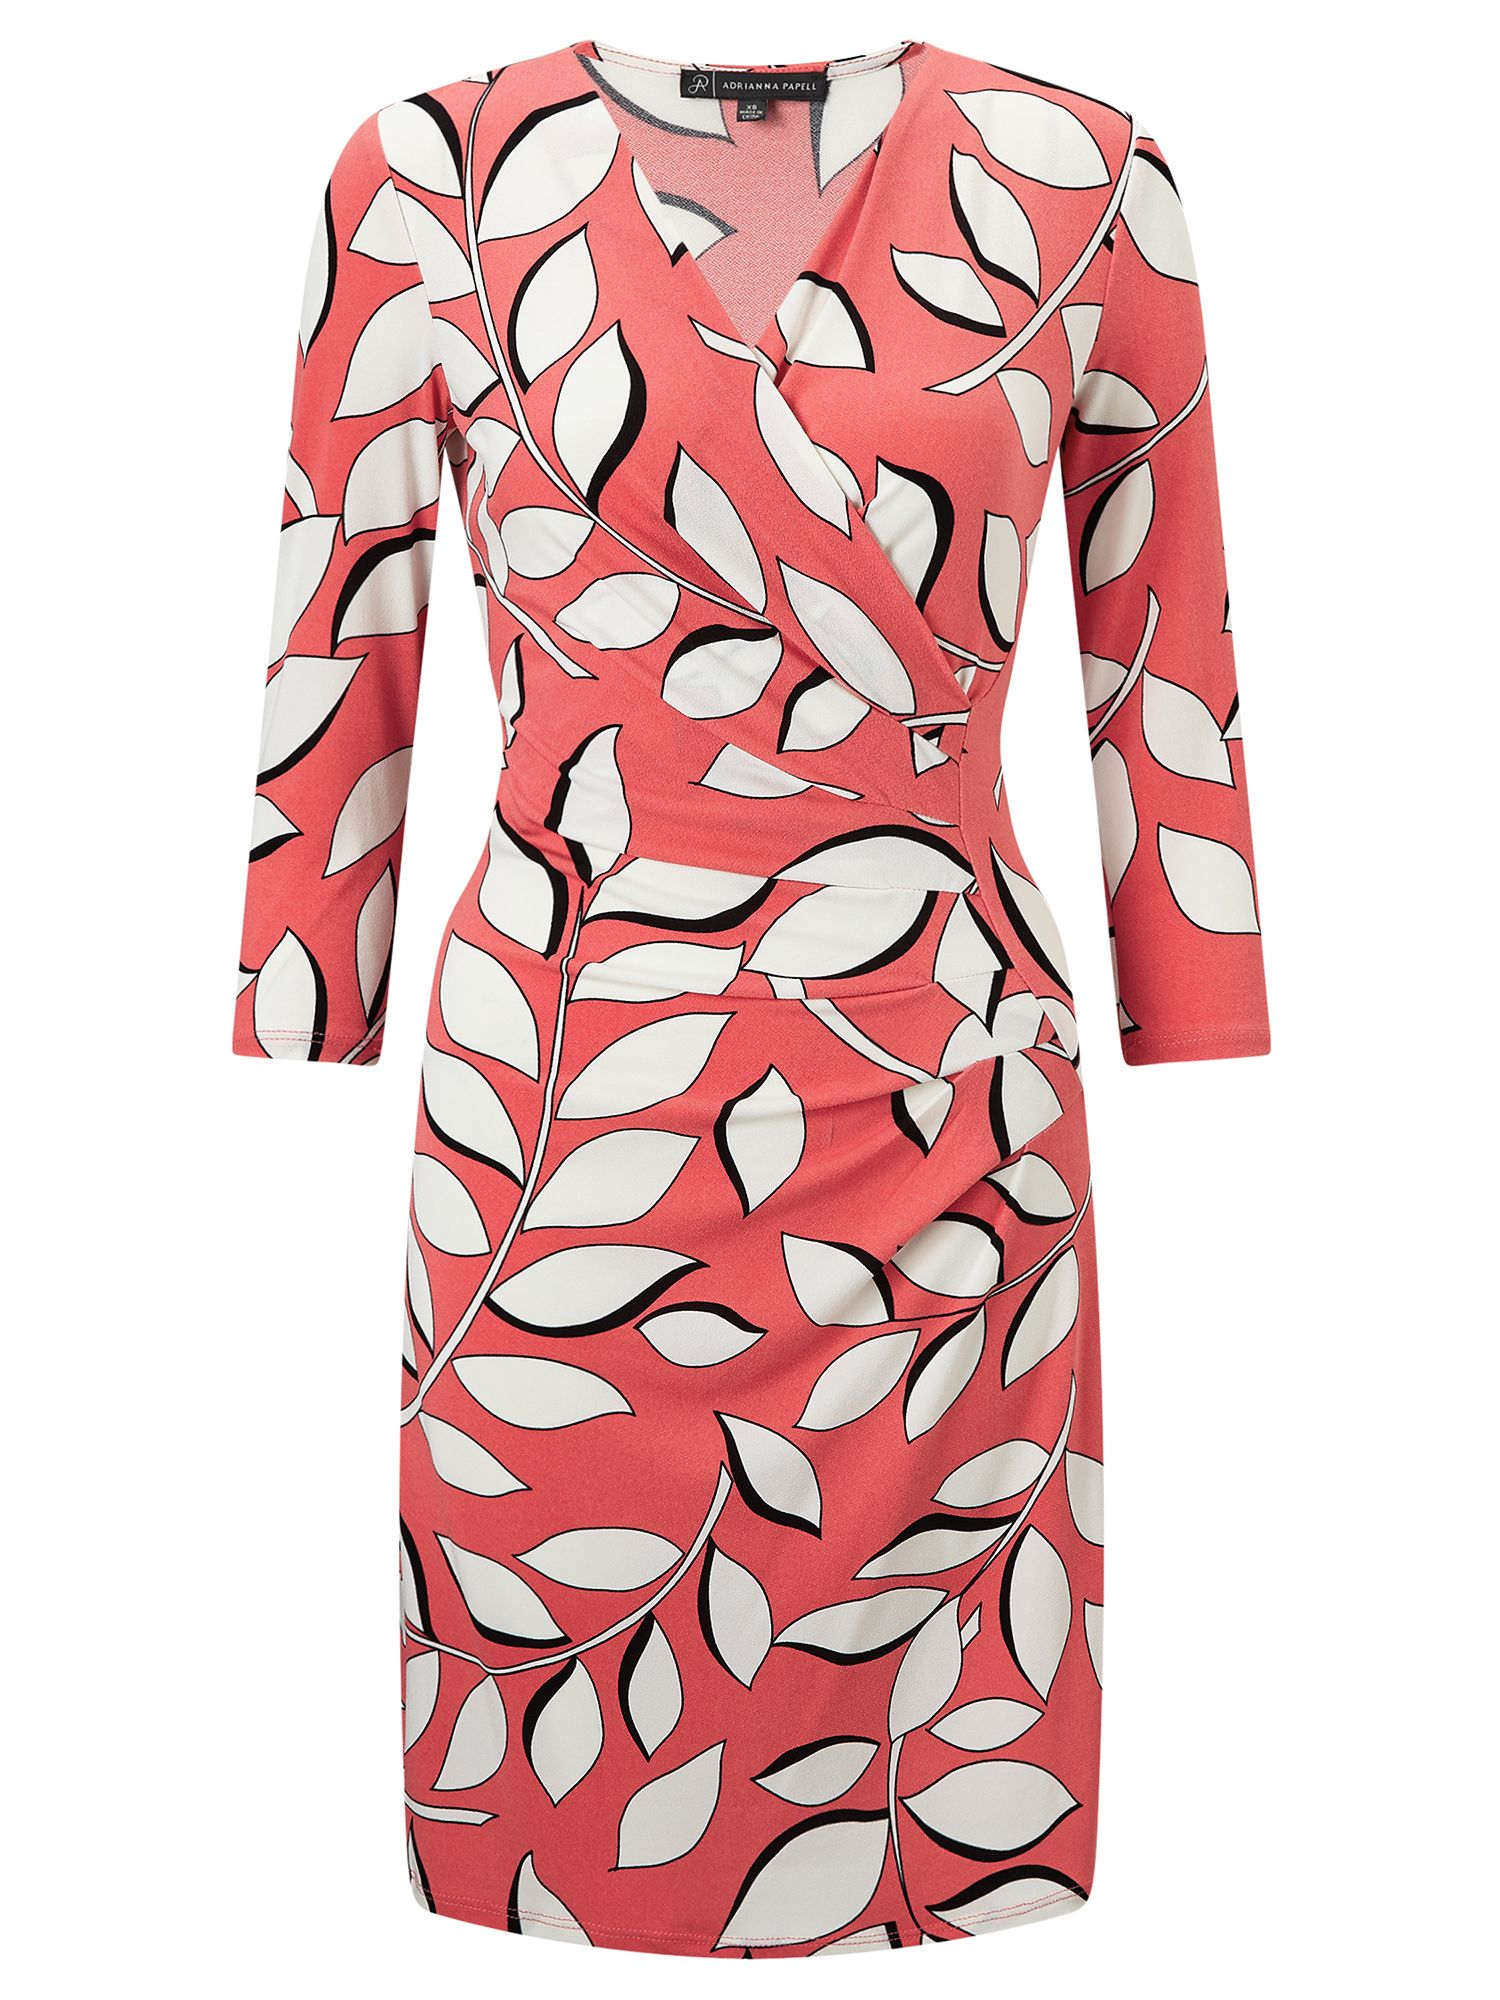 Adrianna Papell 3/4 sleeve leaf print wrap dress, Multi-Coloured